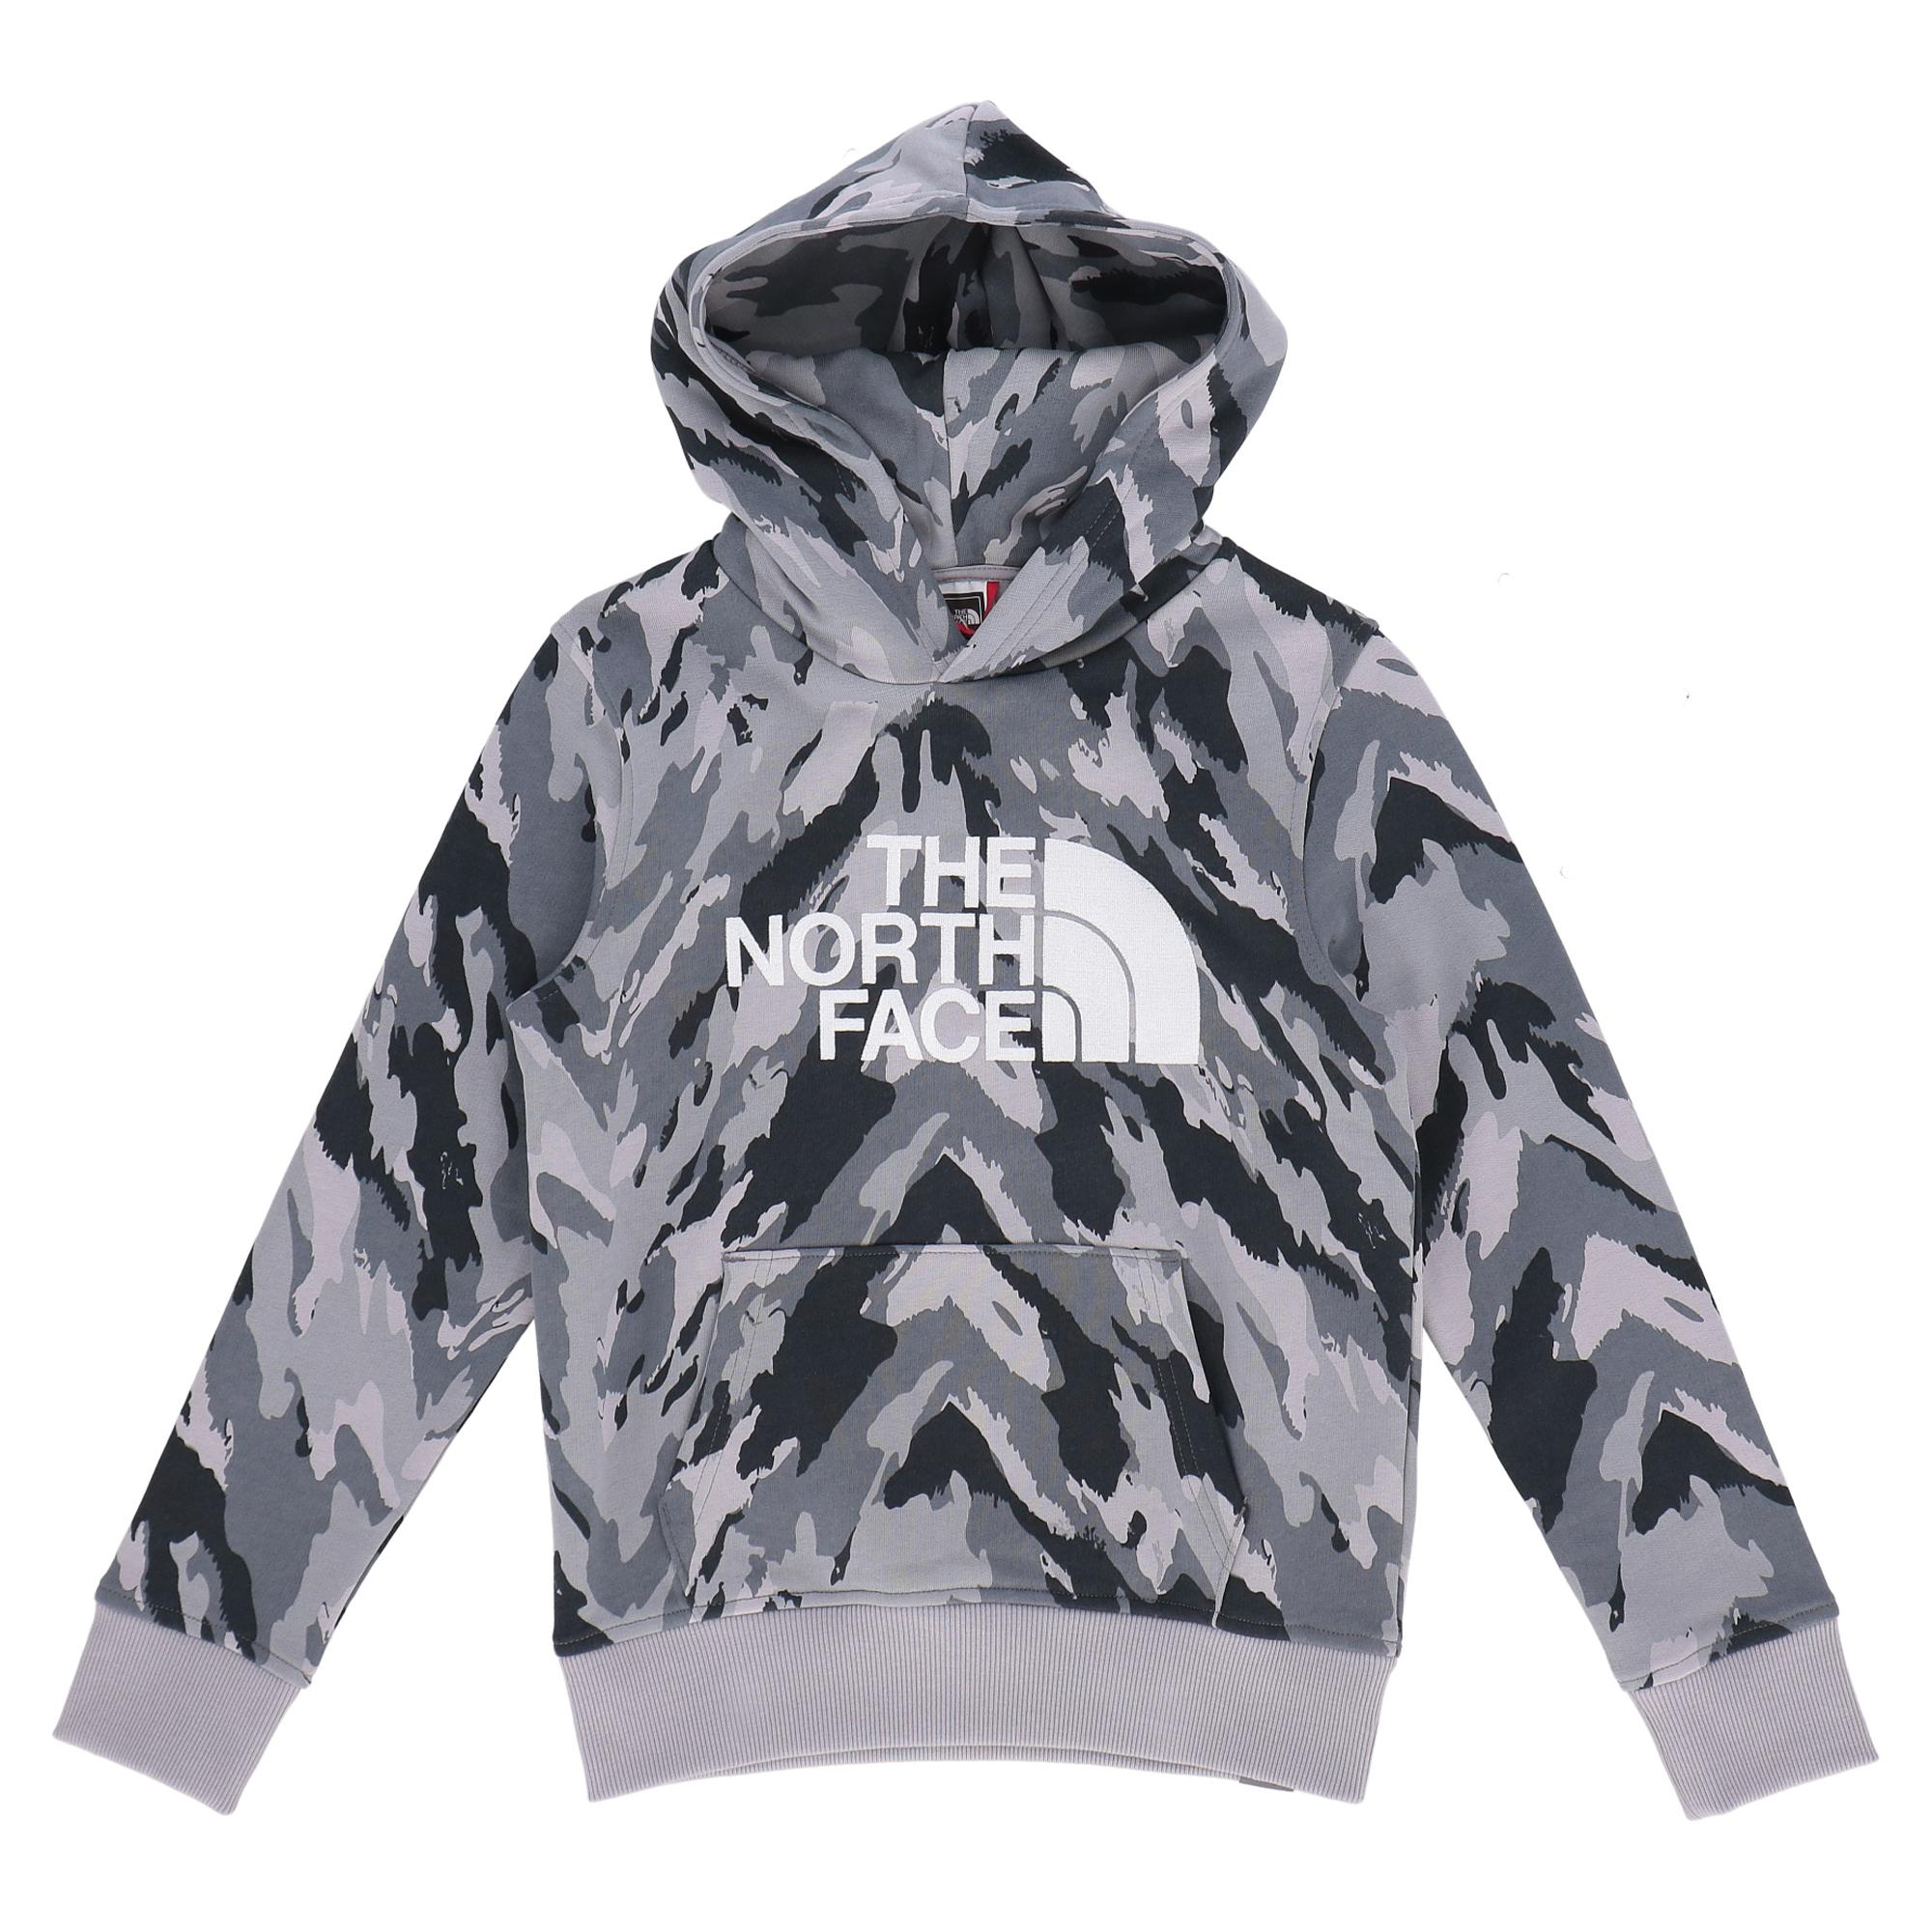 The North Face Drew Peak Po Hdy Meld grey mountain camo print